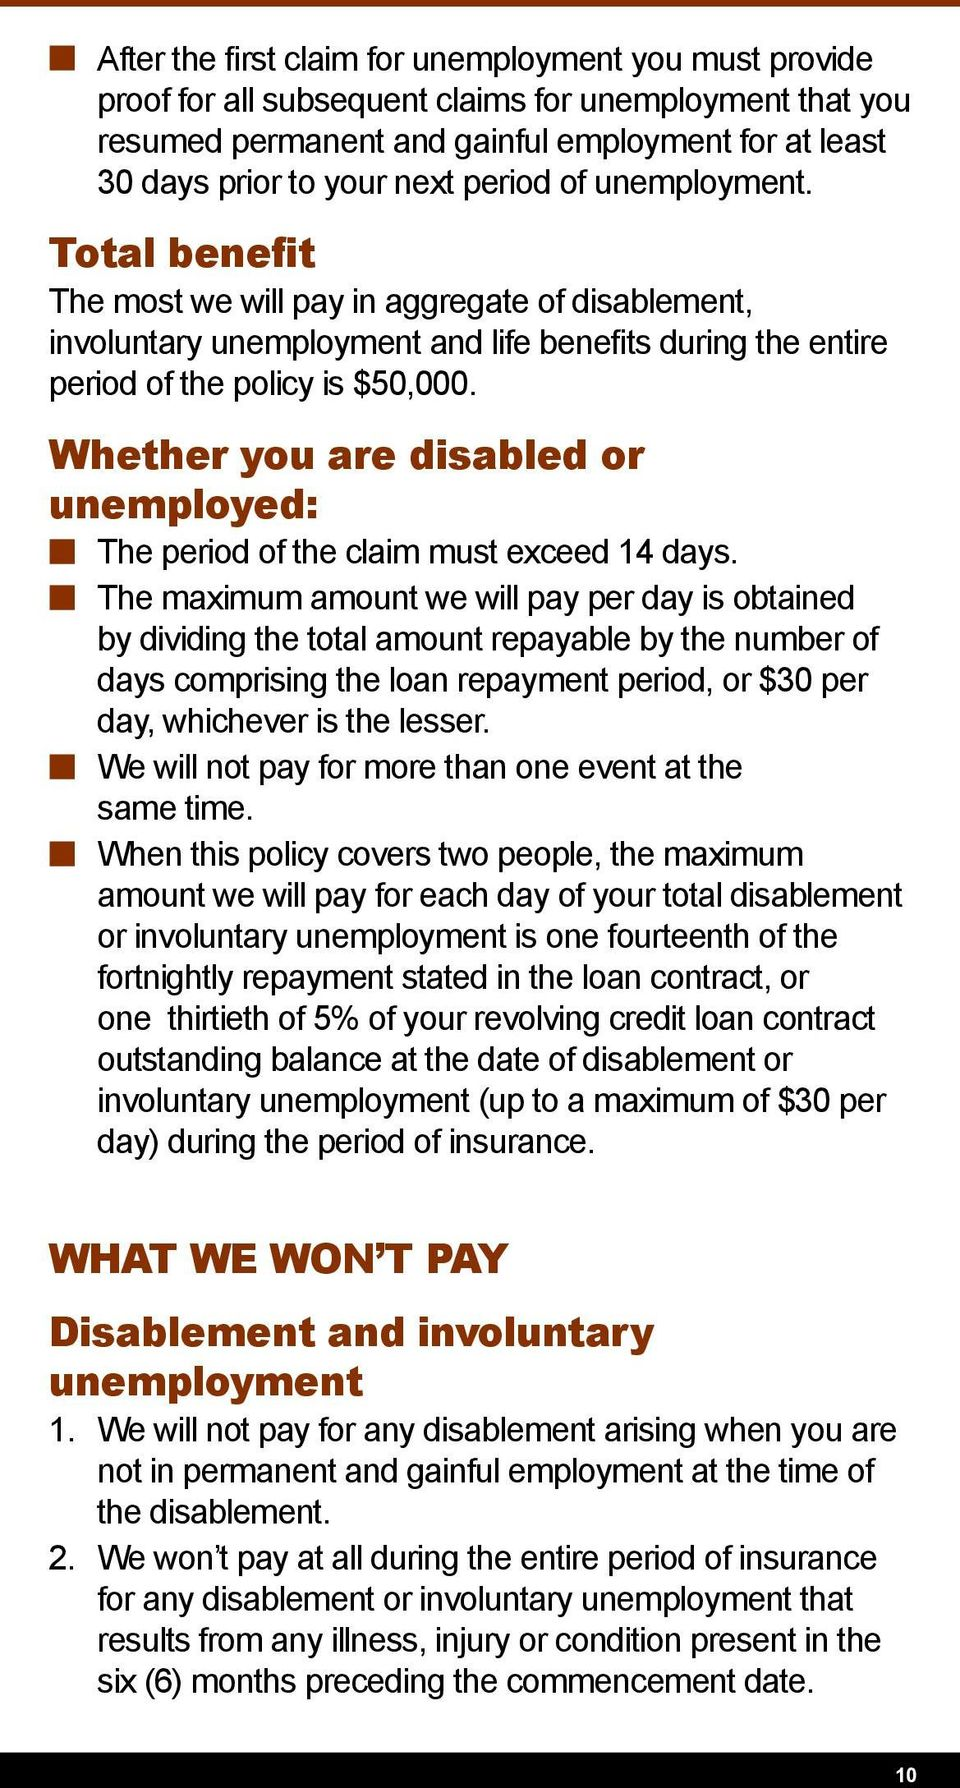 Whether you are disabled or unemployed: The period of the claim must exceed 14 days.